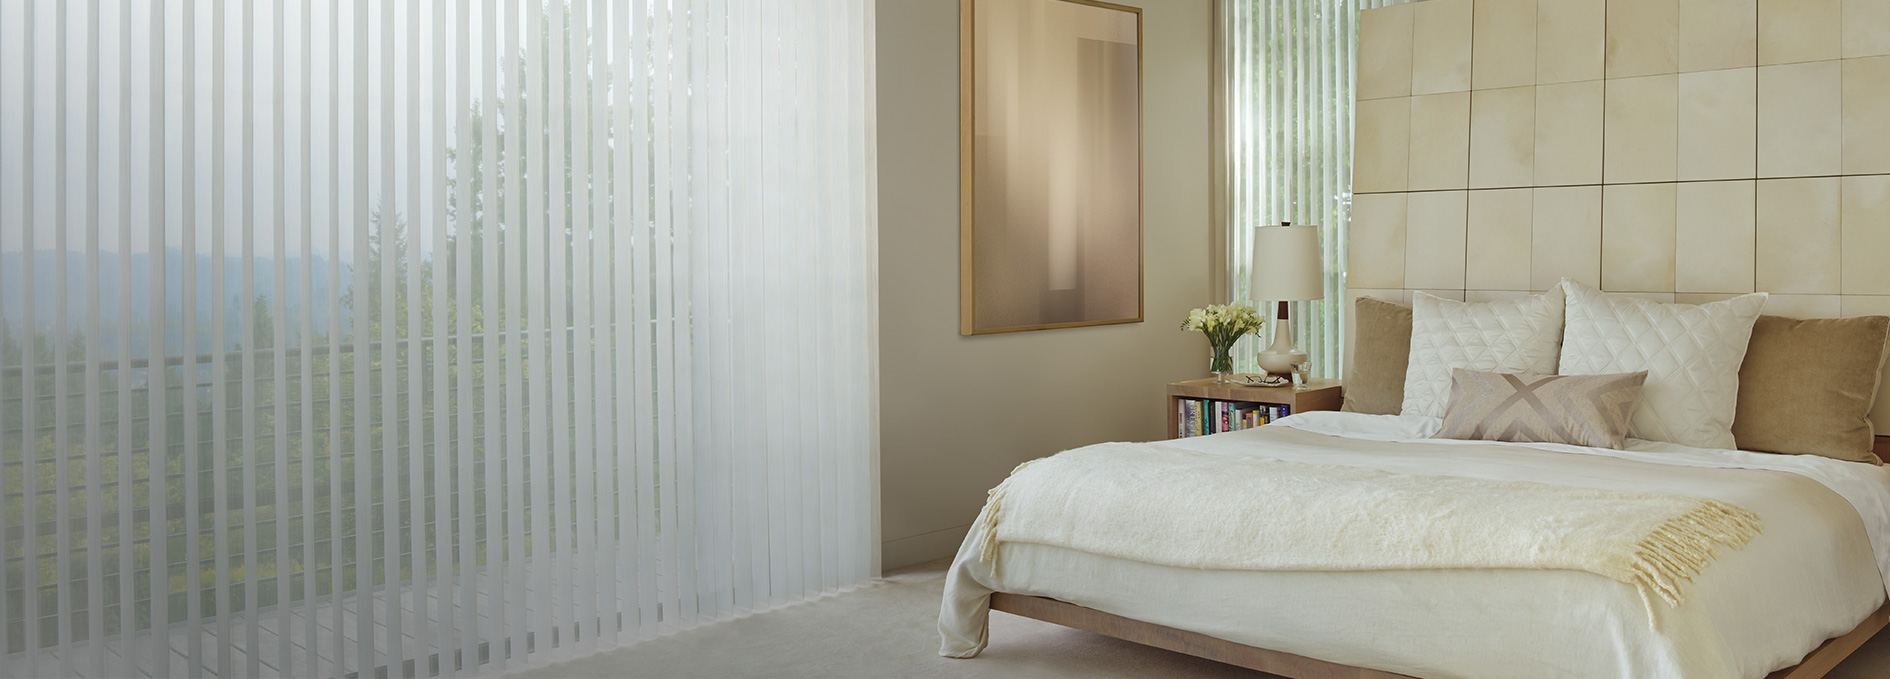 Bedroom window treatments today 39 s window fashions for Window design solutions